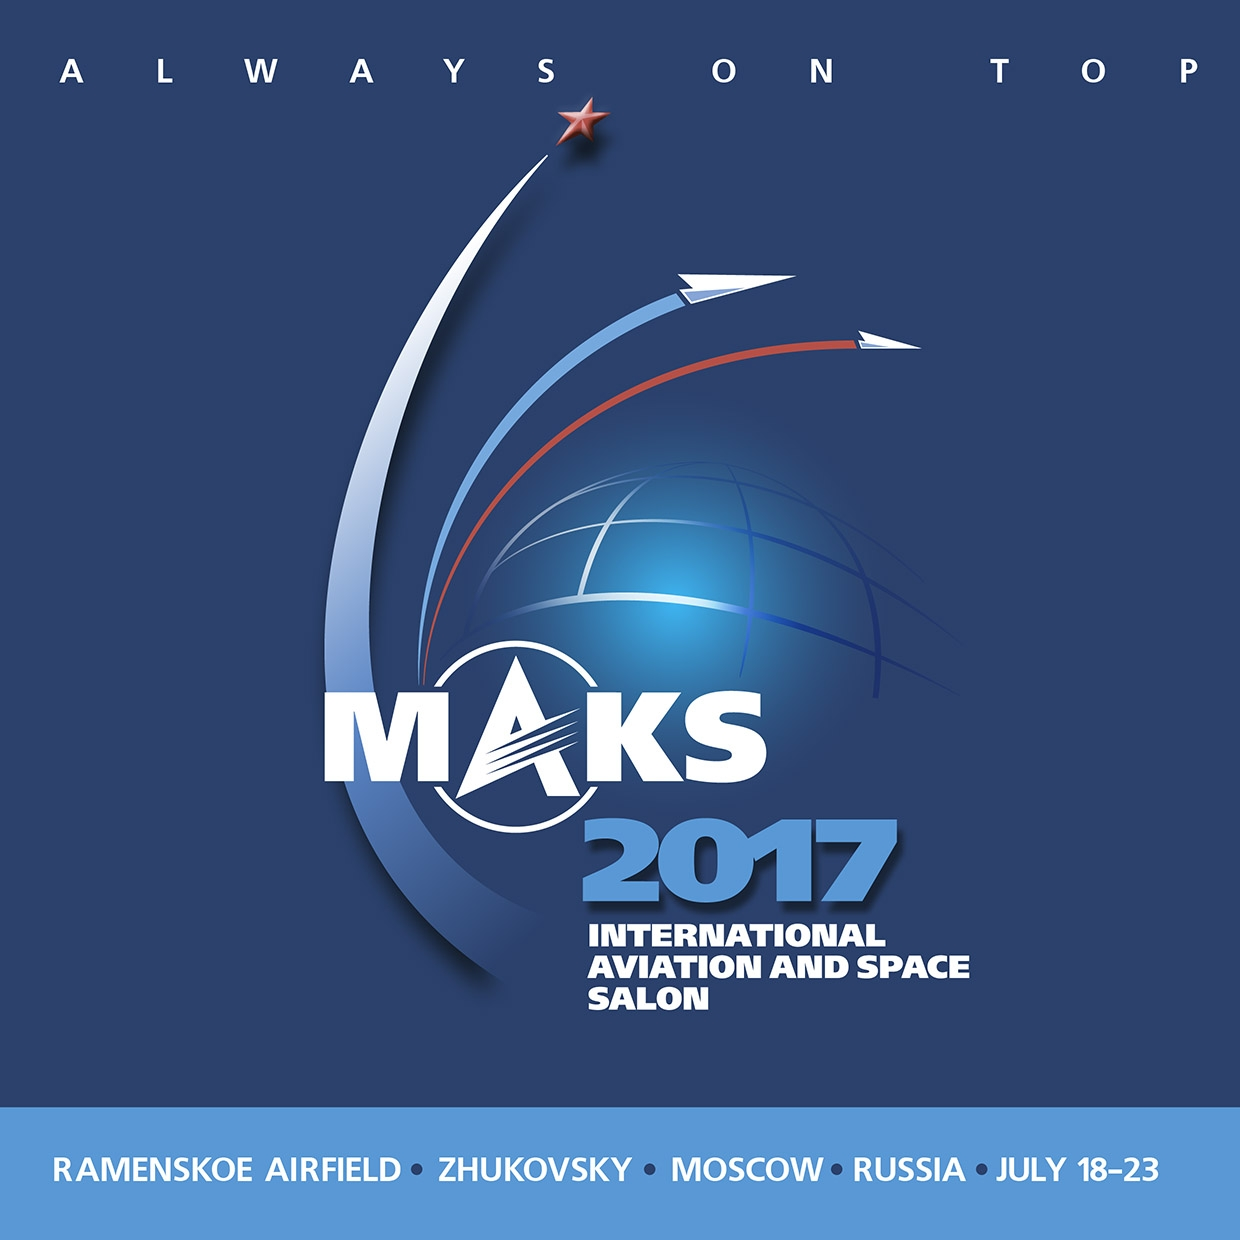 MAKS Air Show - 18/07/2017 in Russian Federation, Zhukovsky